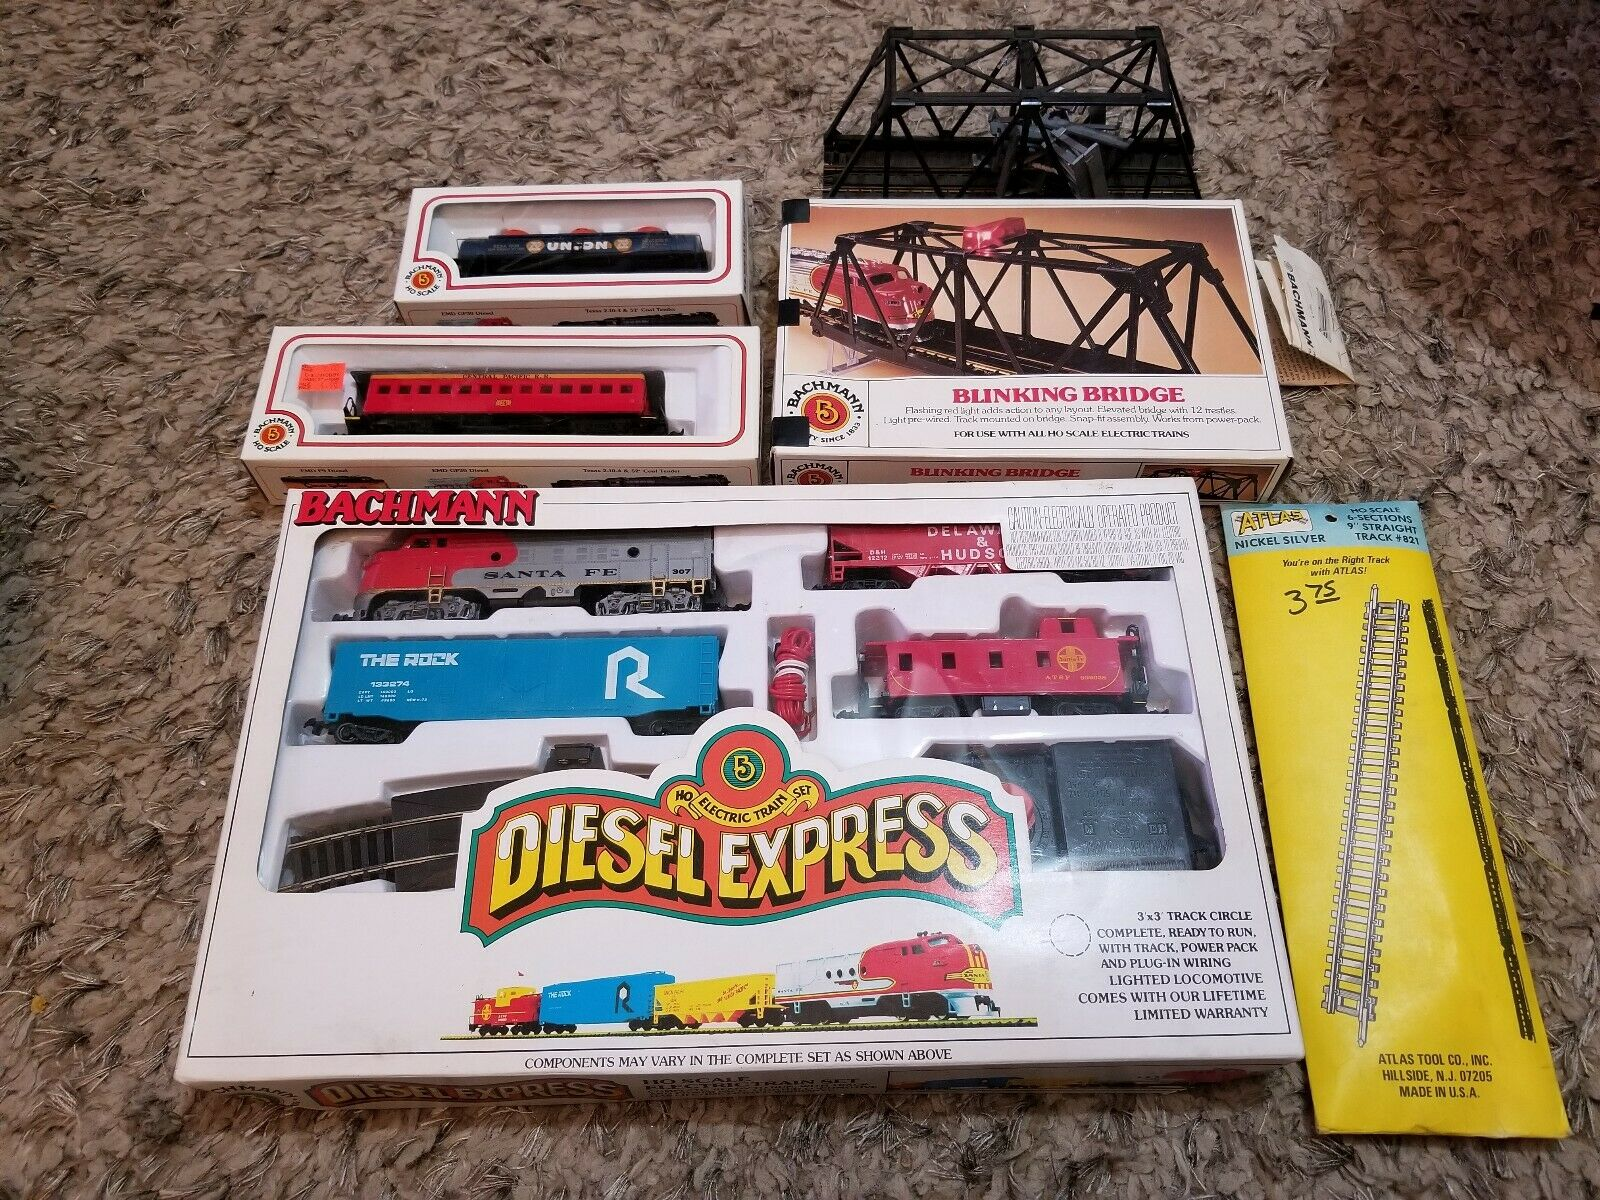 VTG Bachman Diesel Express HO Scale Electric Train Set Tested with extras